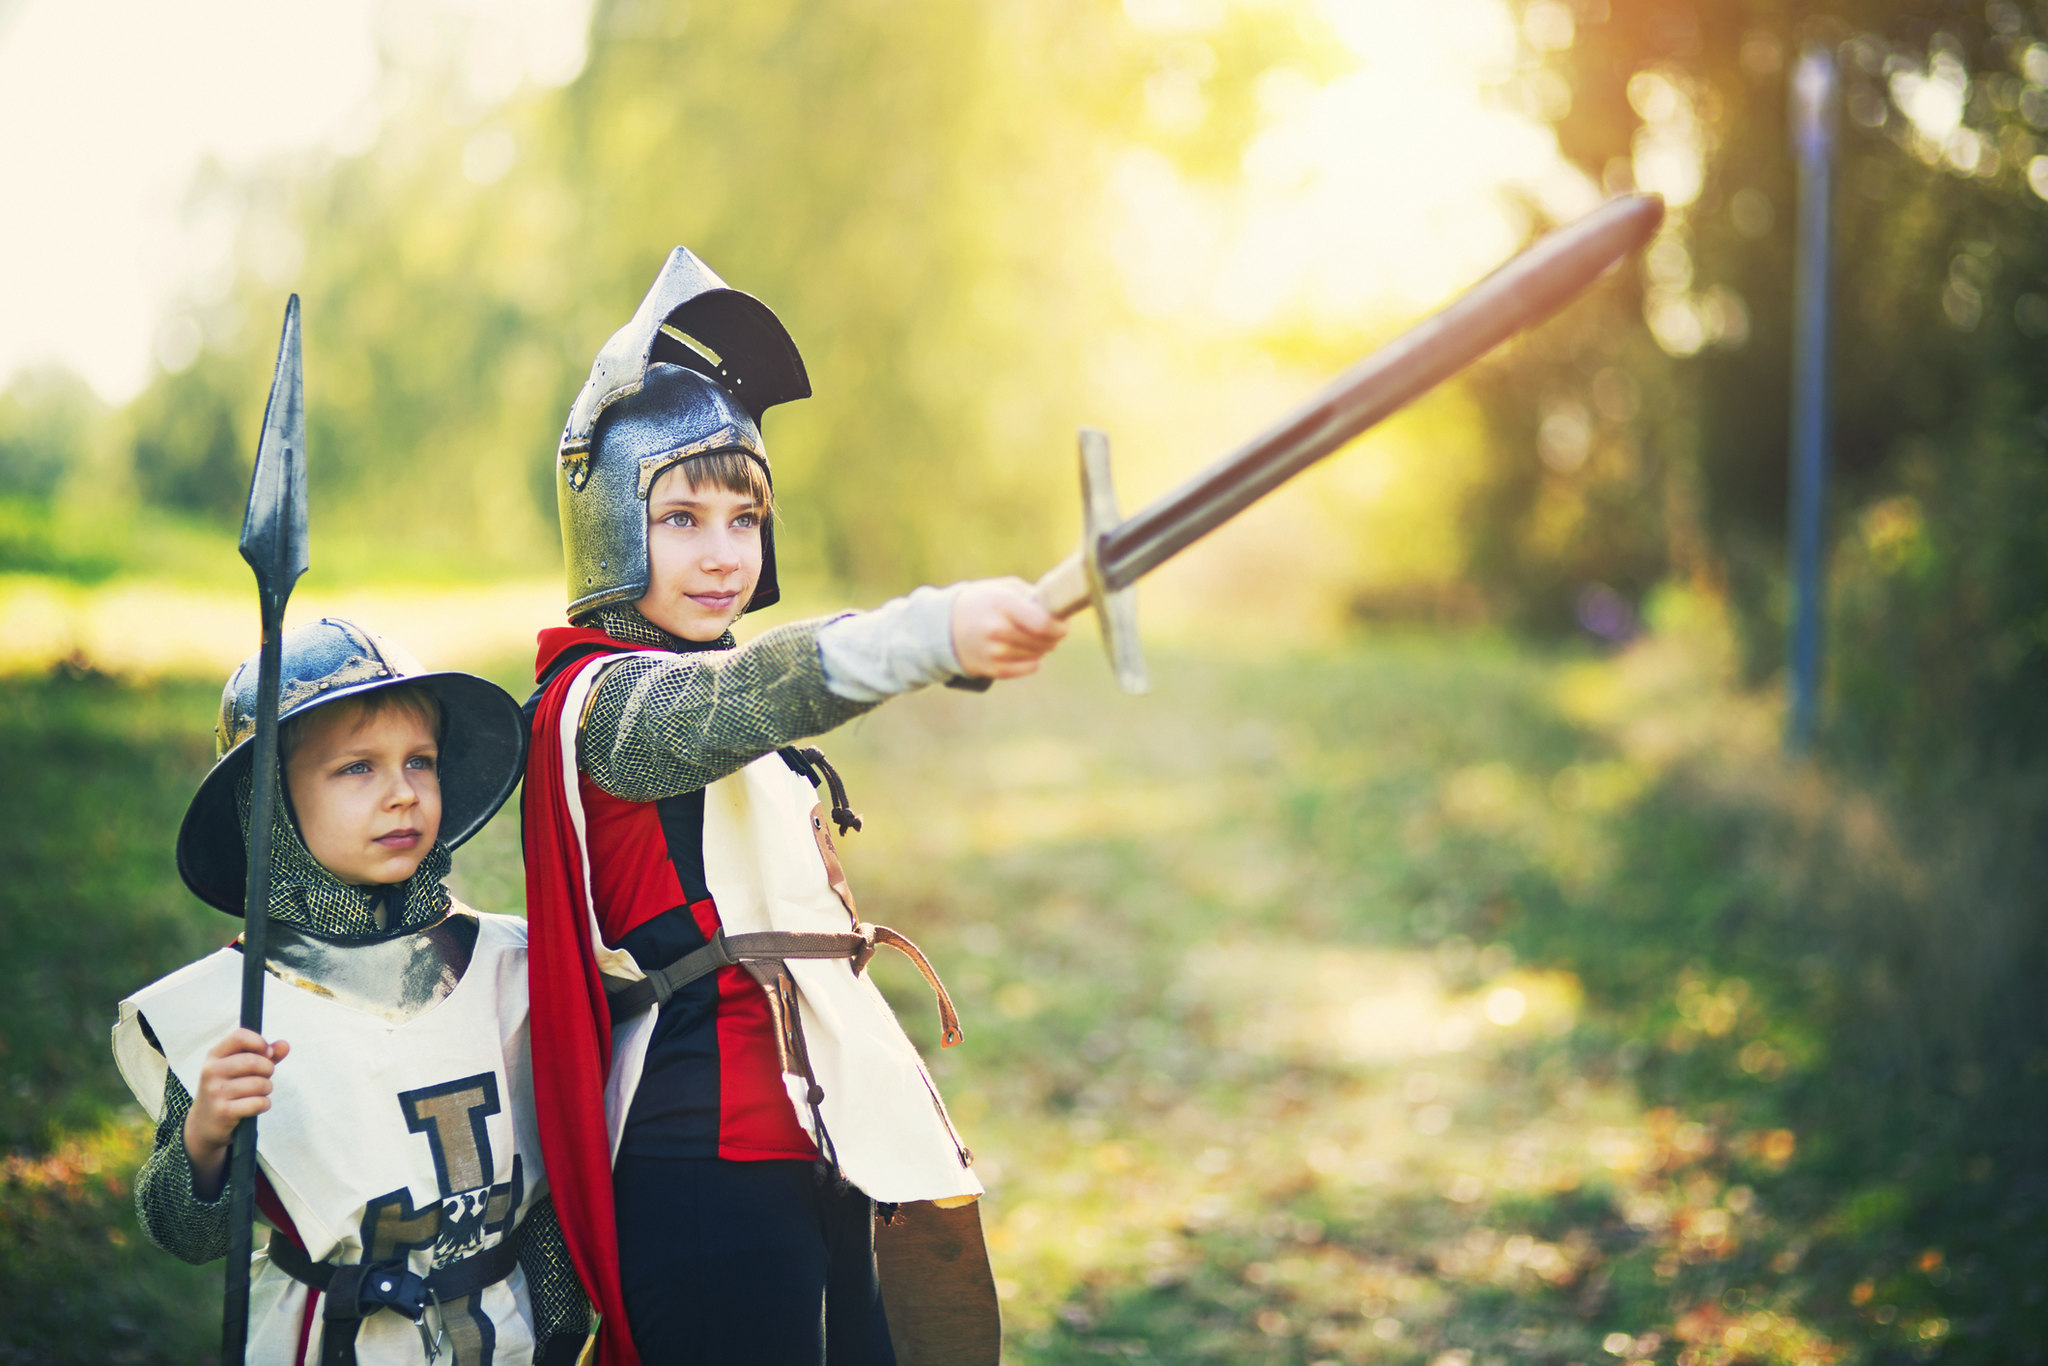 two children dressed up as knights